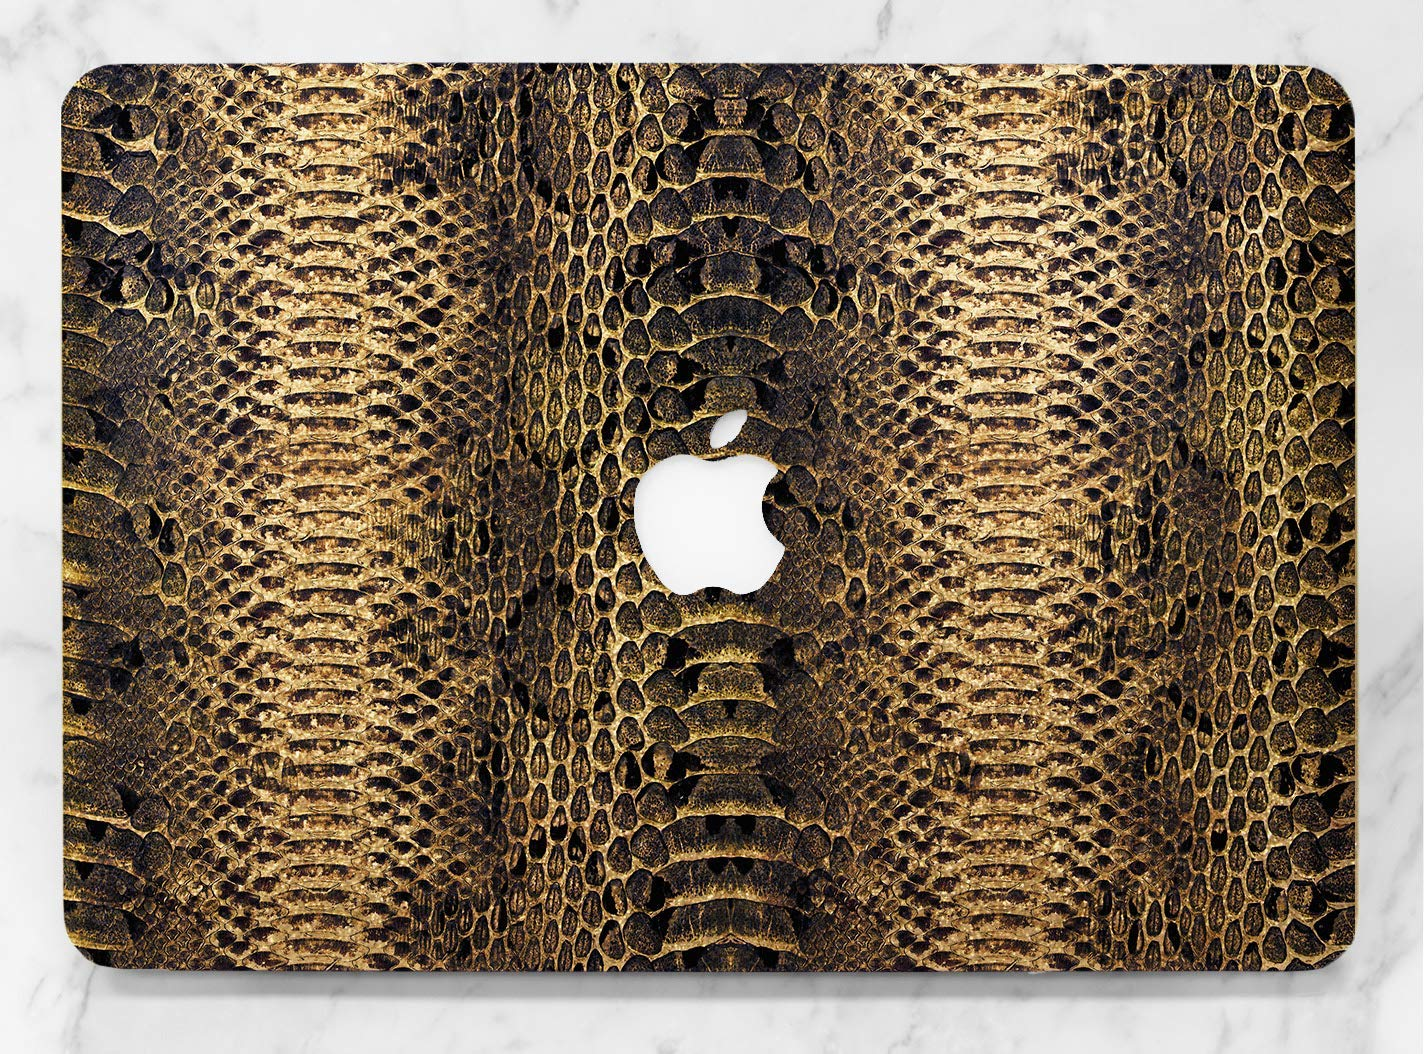 Snake Skin Design Gold Rose Gold Hard Plastic Glitter Case Cover For Apple Macbook Air 11 13 Macbook 12 Macbook Pro 13 15 Inch 2016 2017 2018 With Retina Display Touch Bar